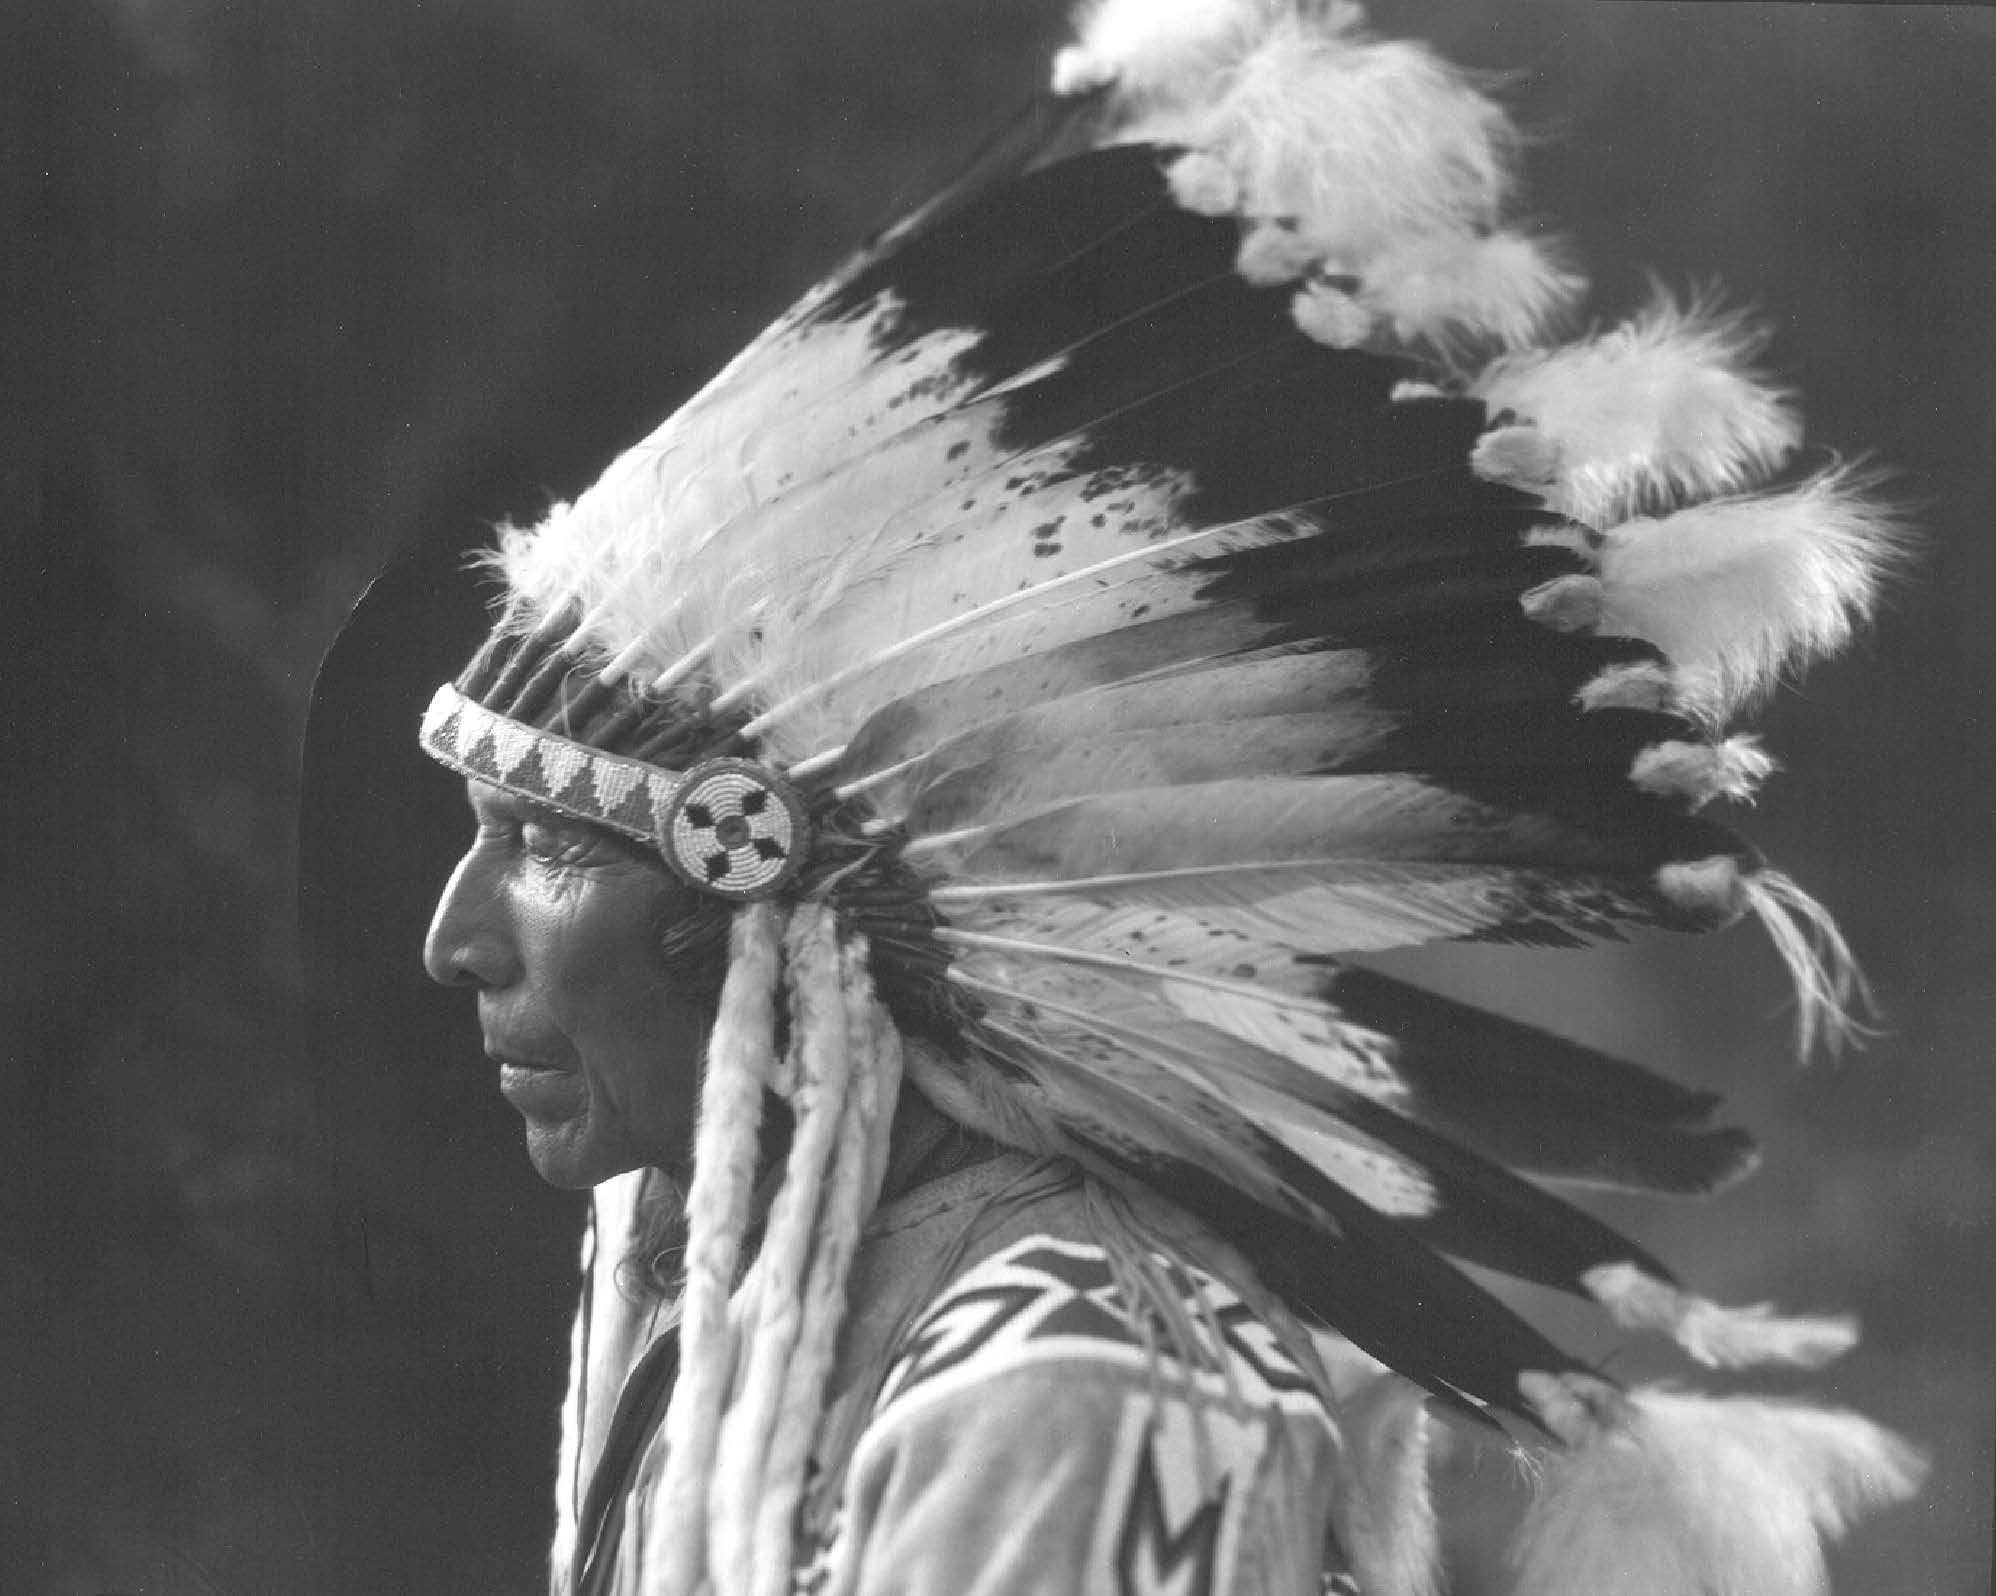 Native American chief with headdress